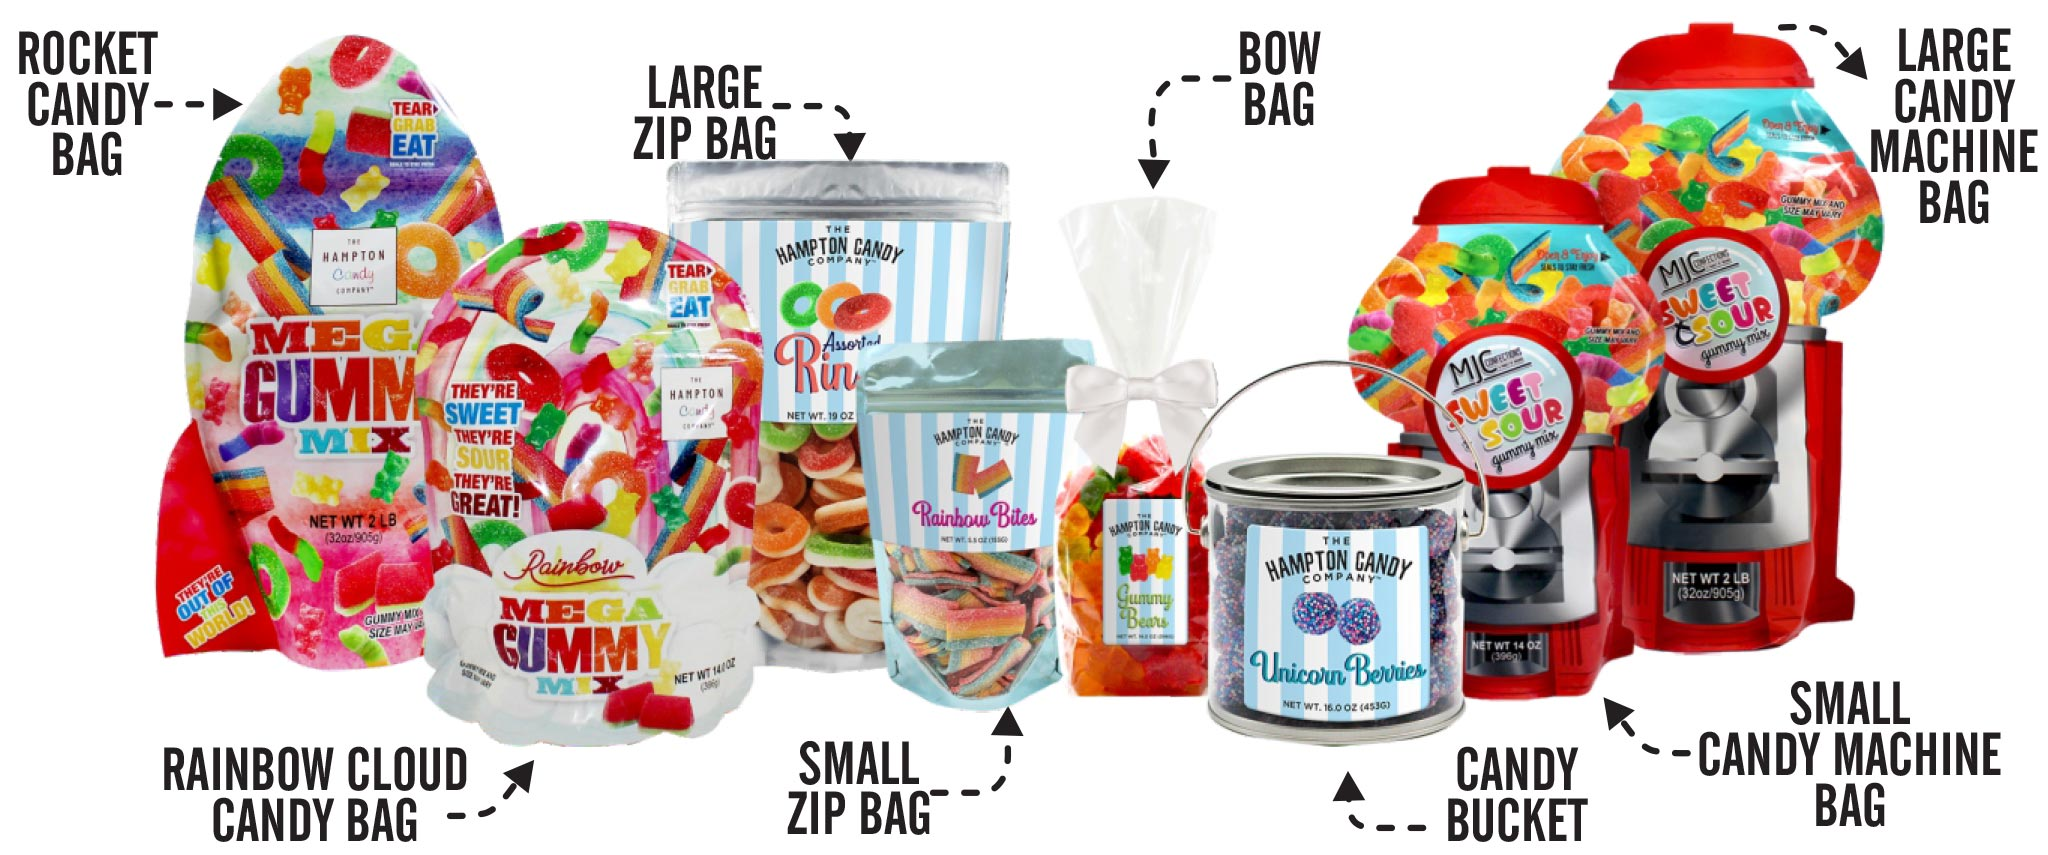 Gummy Candy Collection, Candy Buckets, Zip Bags, Tackle Boxes & More